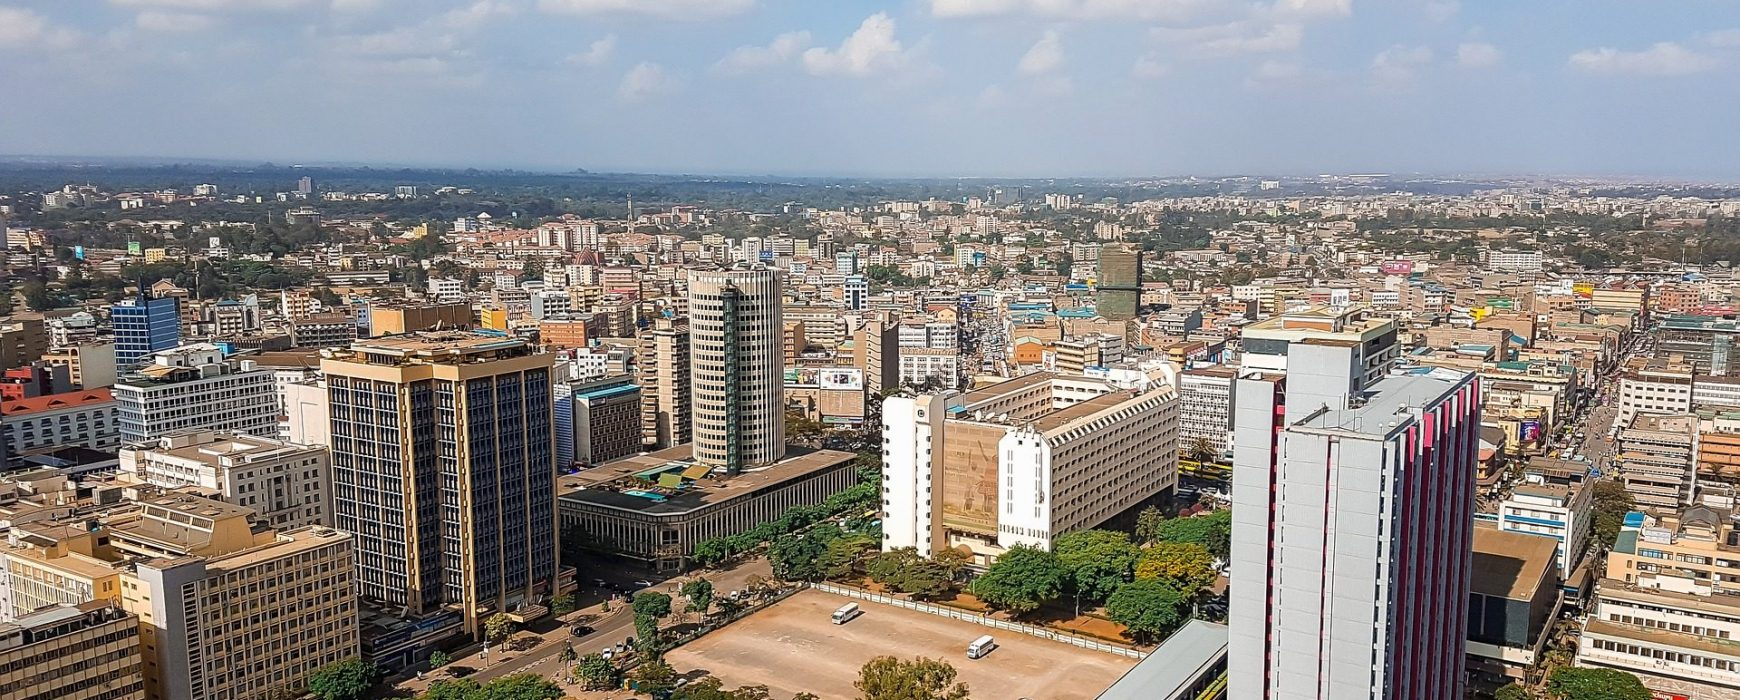 Seminar on urbain  development in Nairobi